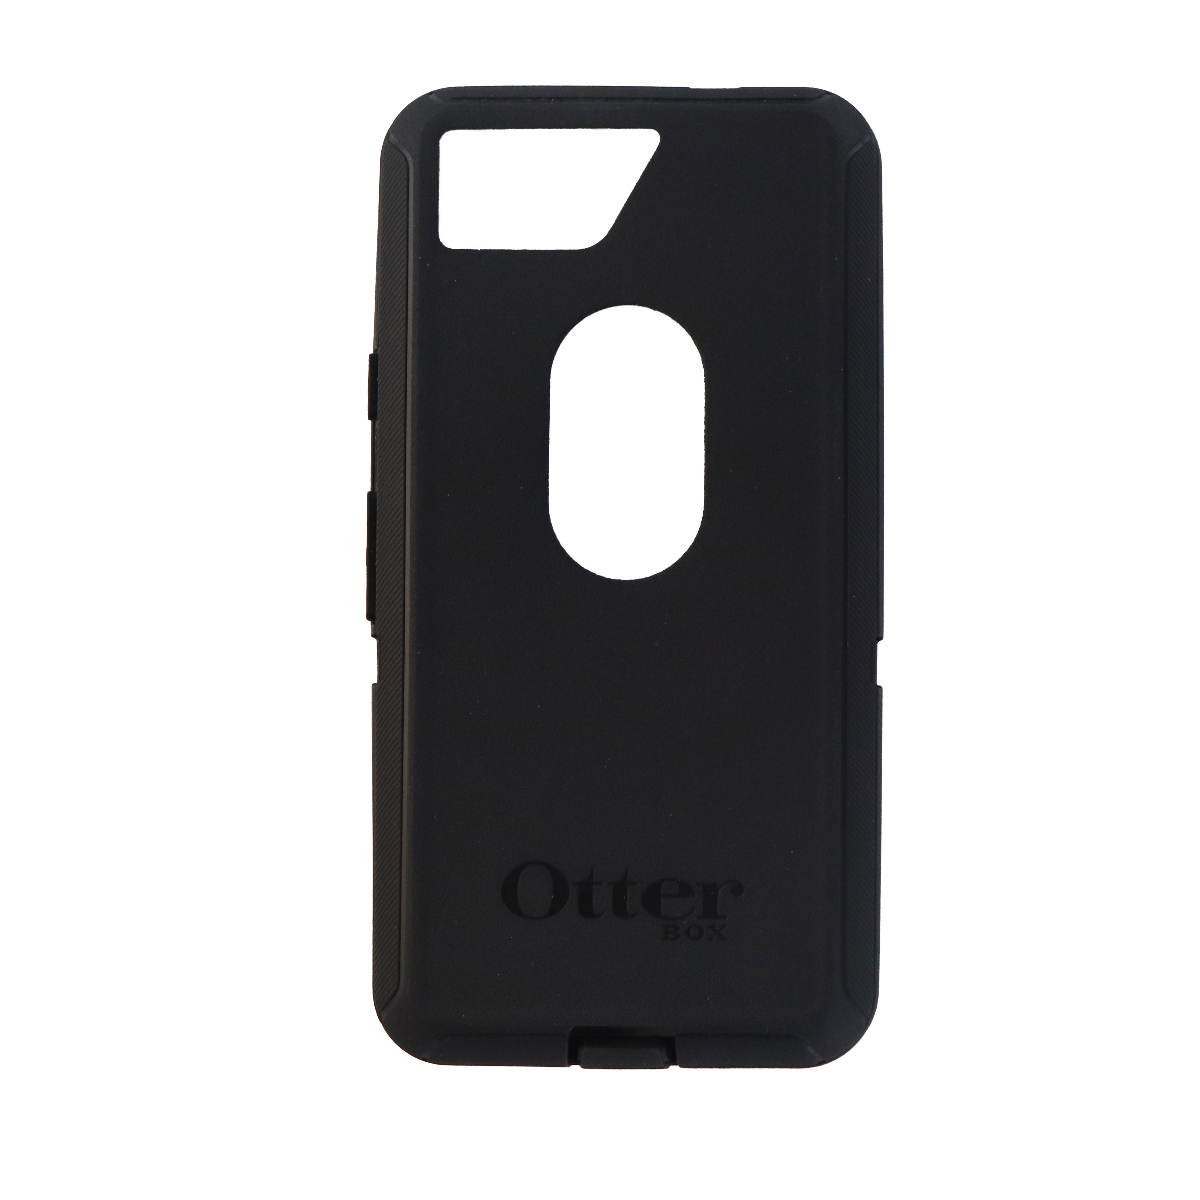 OtterBox Replacement Exterior Shell for Pixel 2 Defender Series Cases - Black